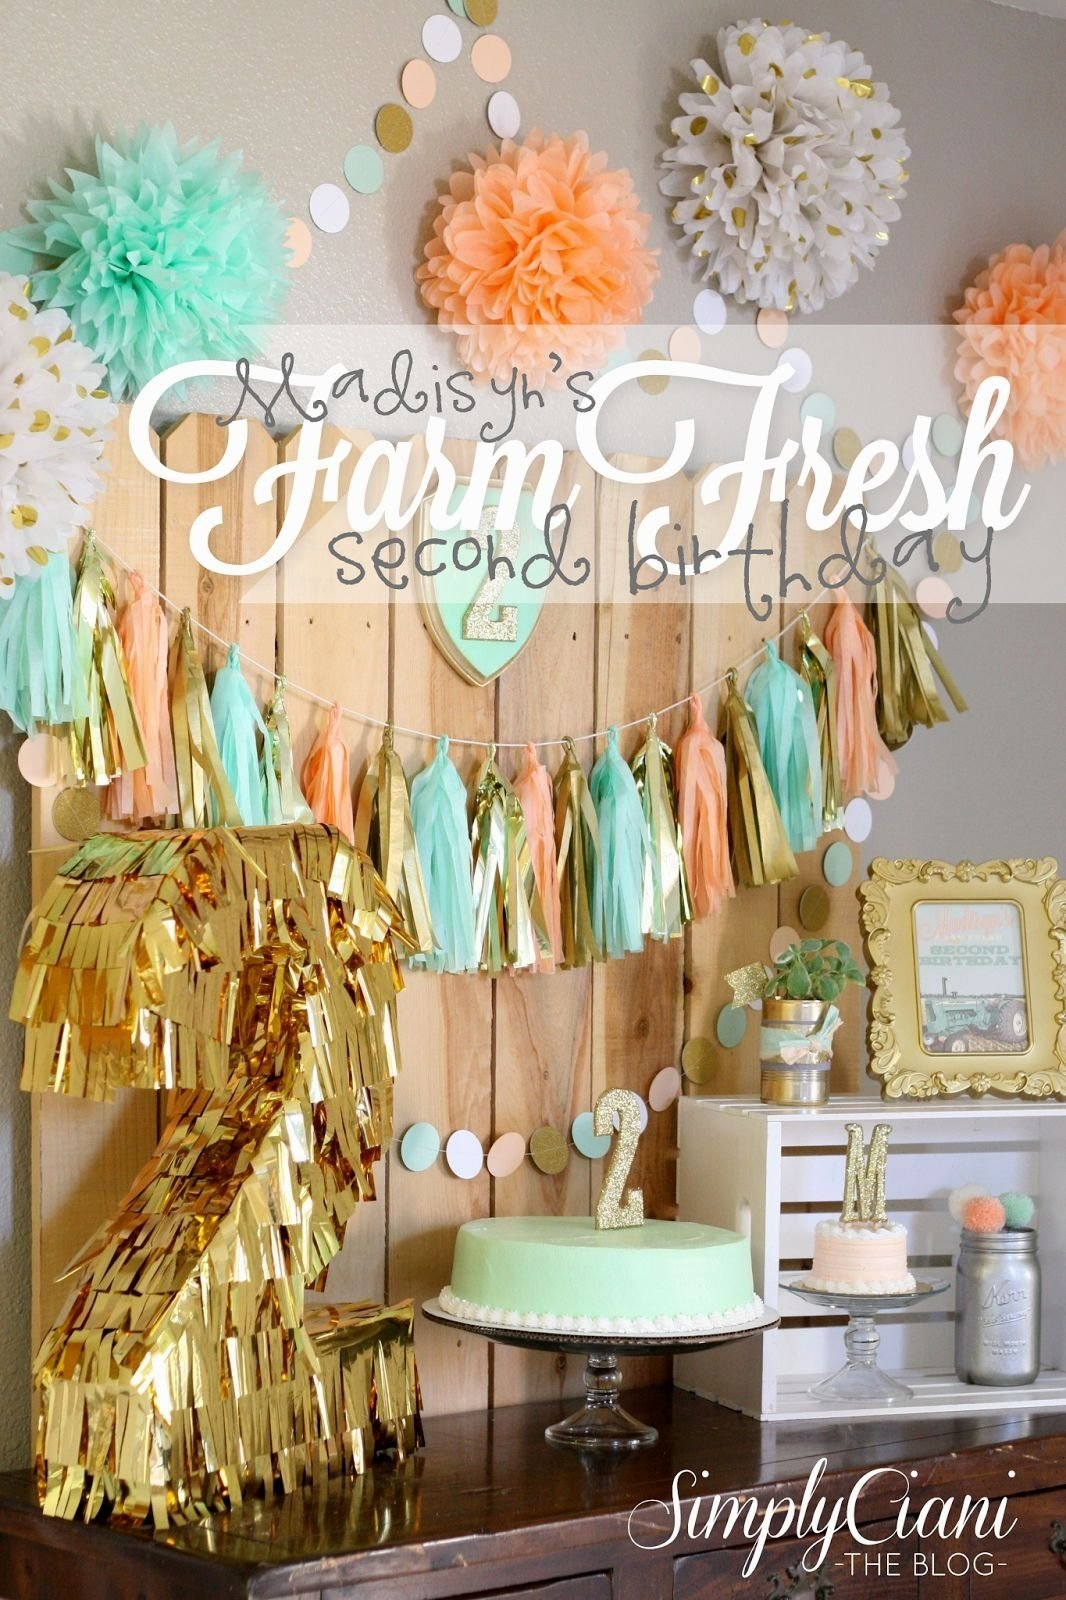 10 Stylish 2Nd Birthday Party Ideas Girl 2nd birthday party ideas winter decorating of party 2020